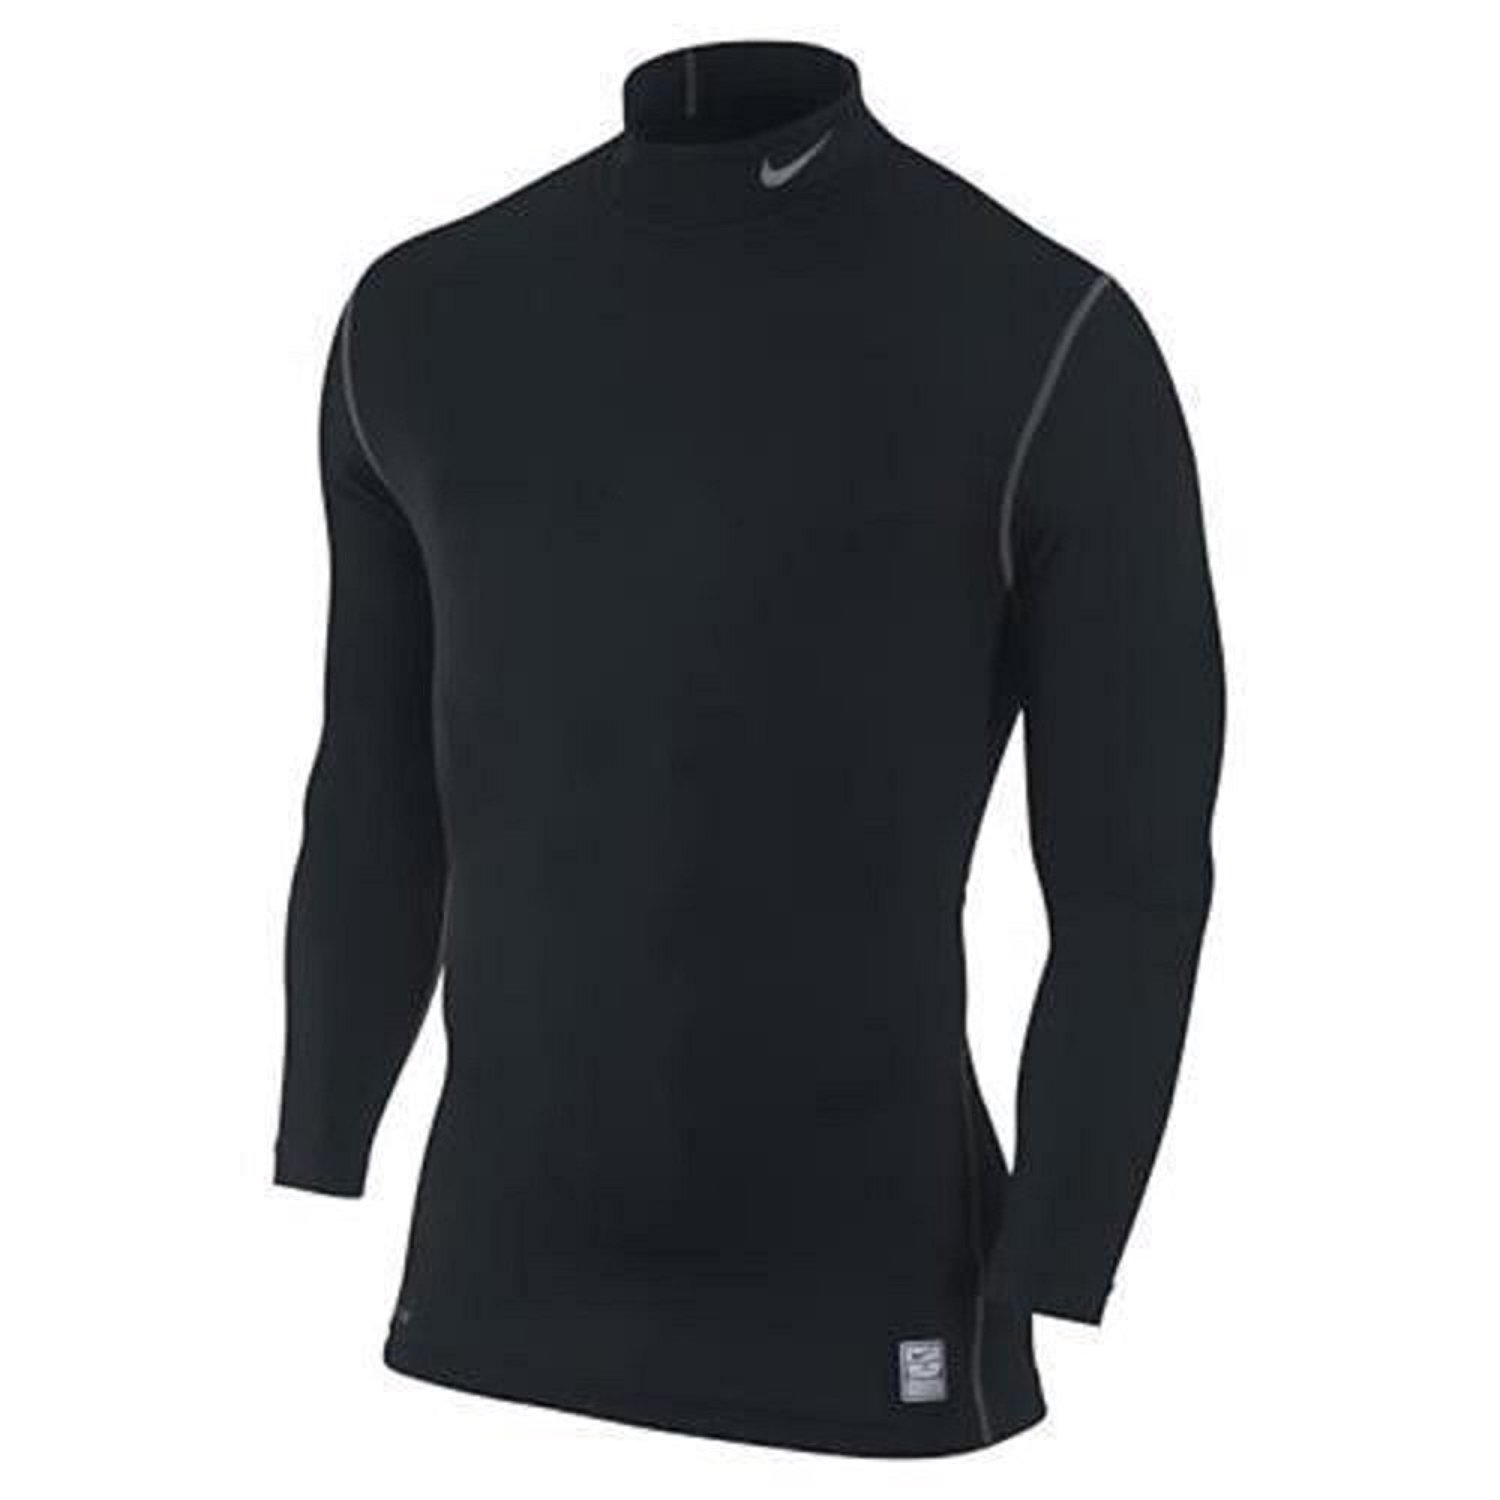 ce125aa7 Nike Mens Pro Hyperwarm Dri-FIT Max Compression Mock Long Sleeve Shirt.  59.99. Nike Men's Golf Fitted Hyperwarm Pro Combat Mock